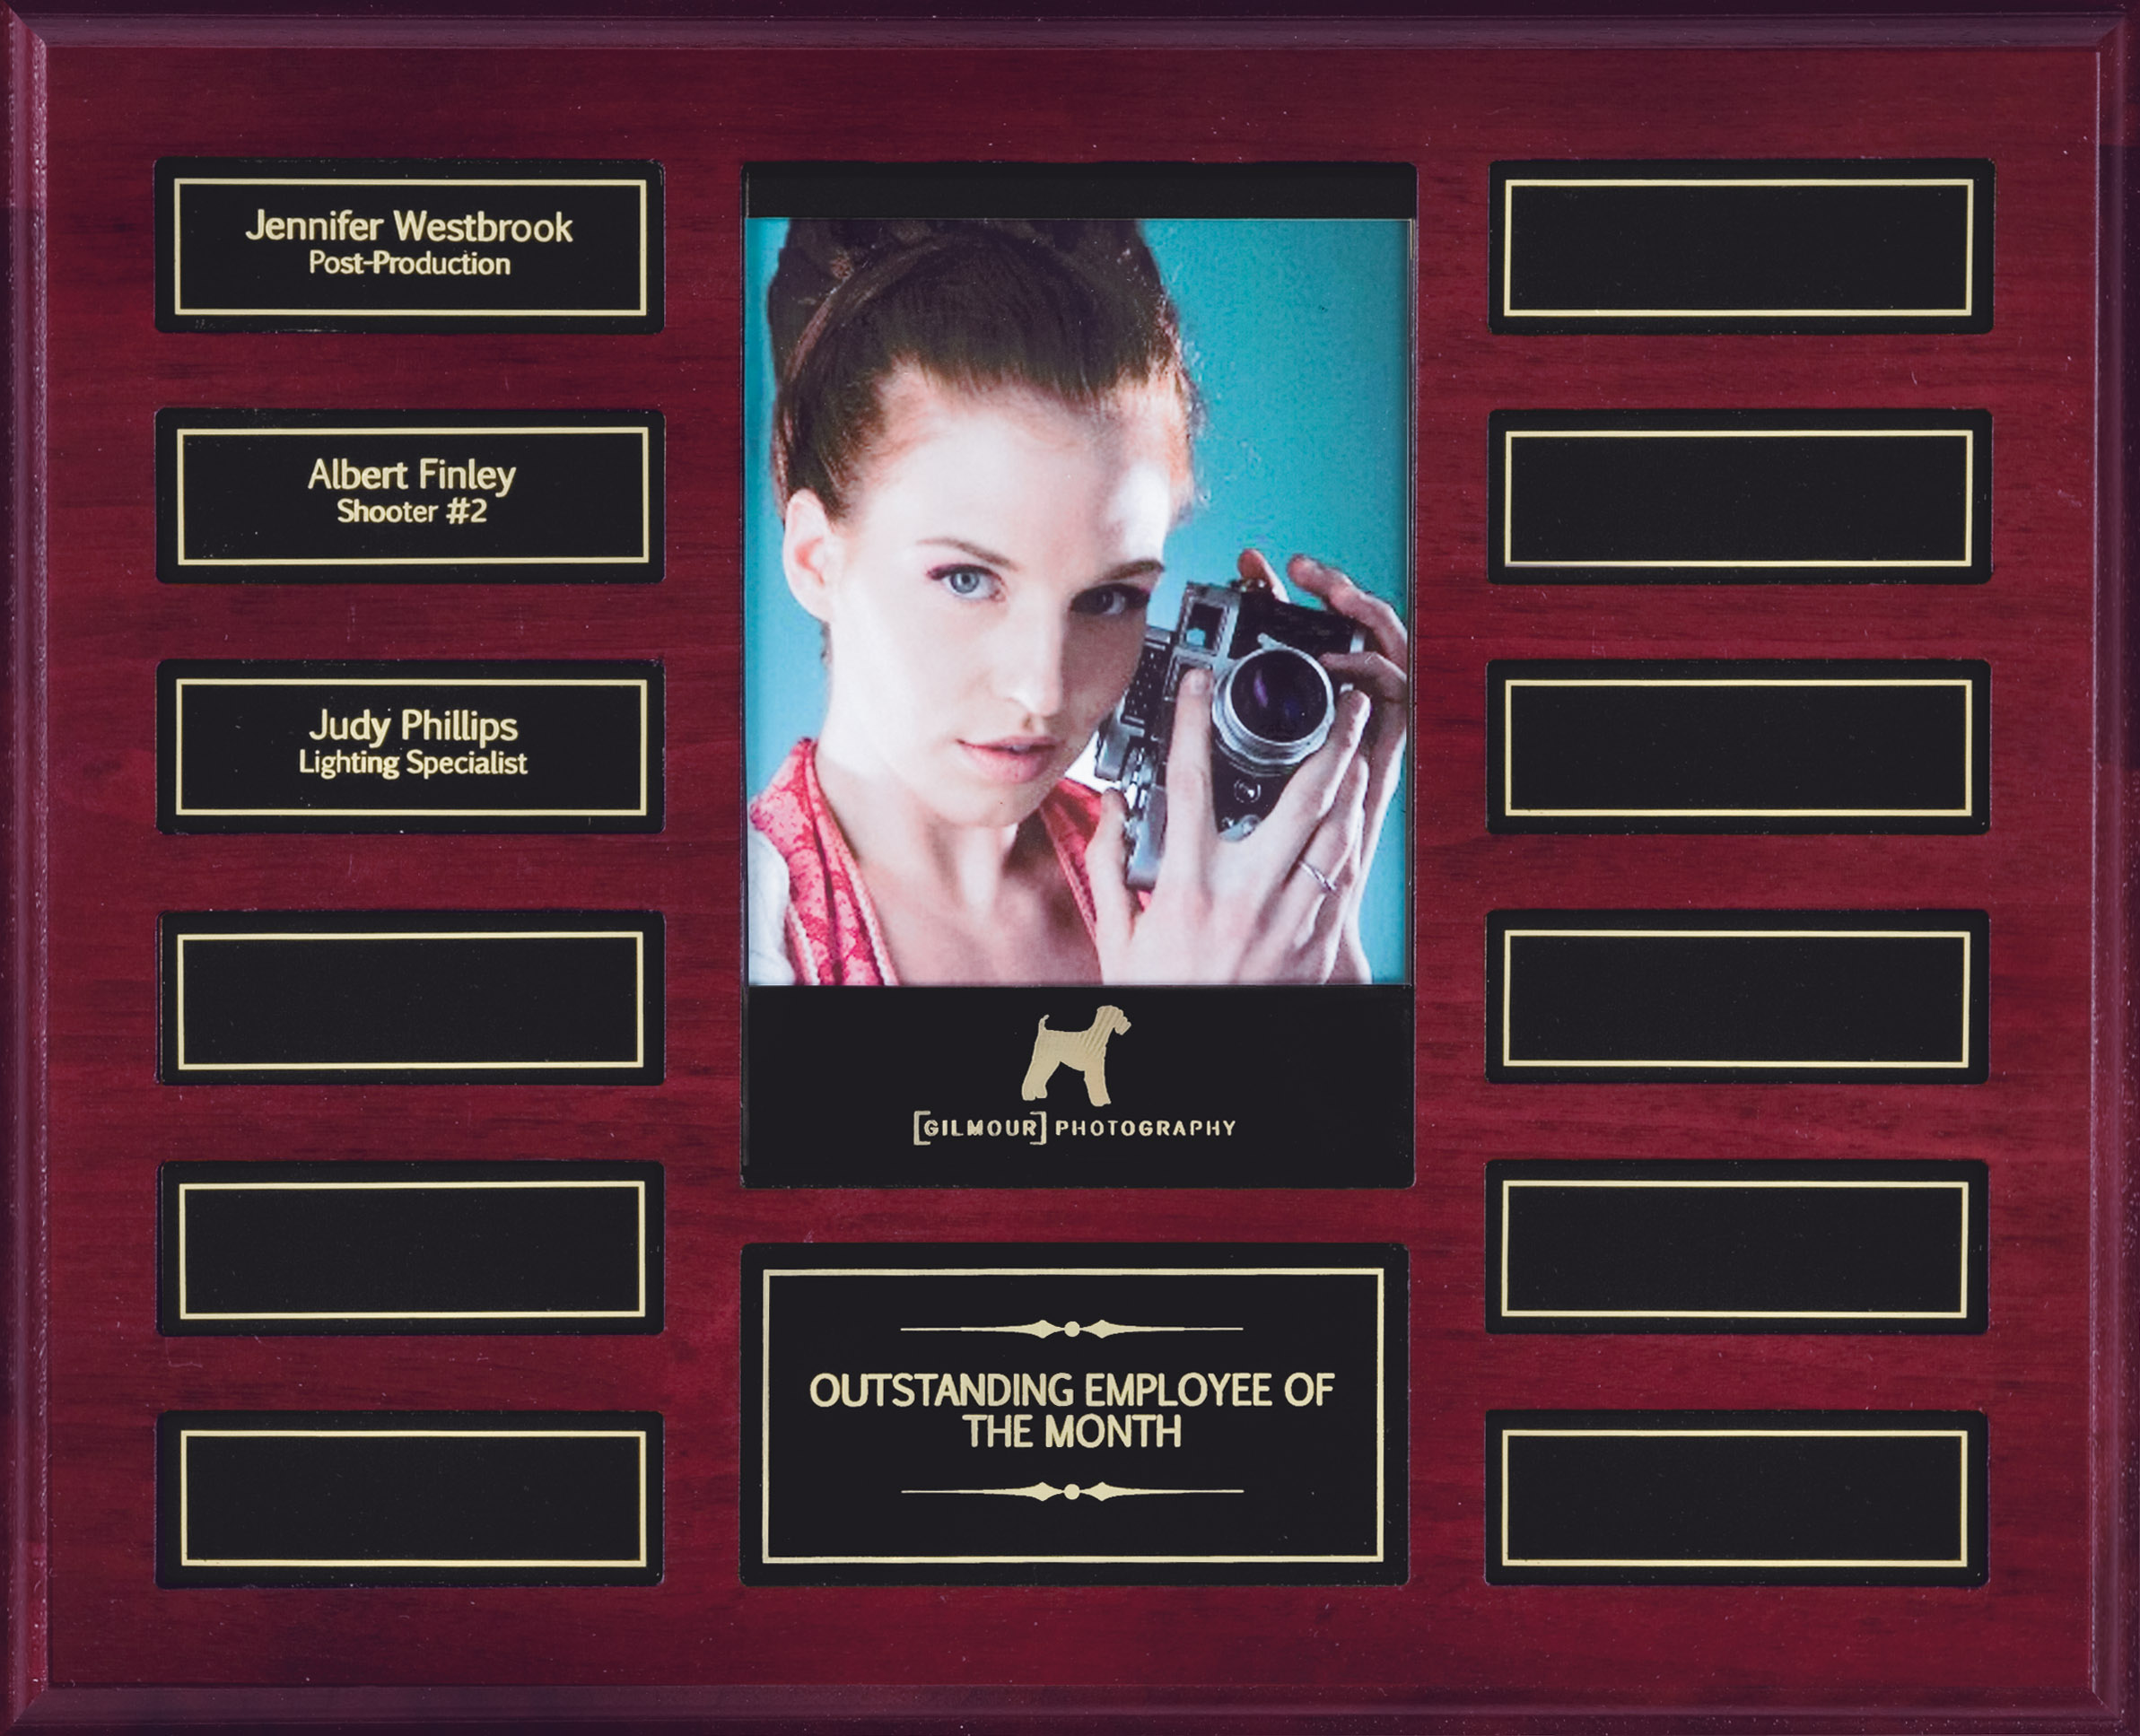 """Perpetual Plaque with Photo - APT215D-BK   10.5"""""""" x 13"""" with 12 plates (1"""" x 3"""") - Mahogany Finish   Price = $125  (Includes engraving on title plate and one name plate)"""